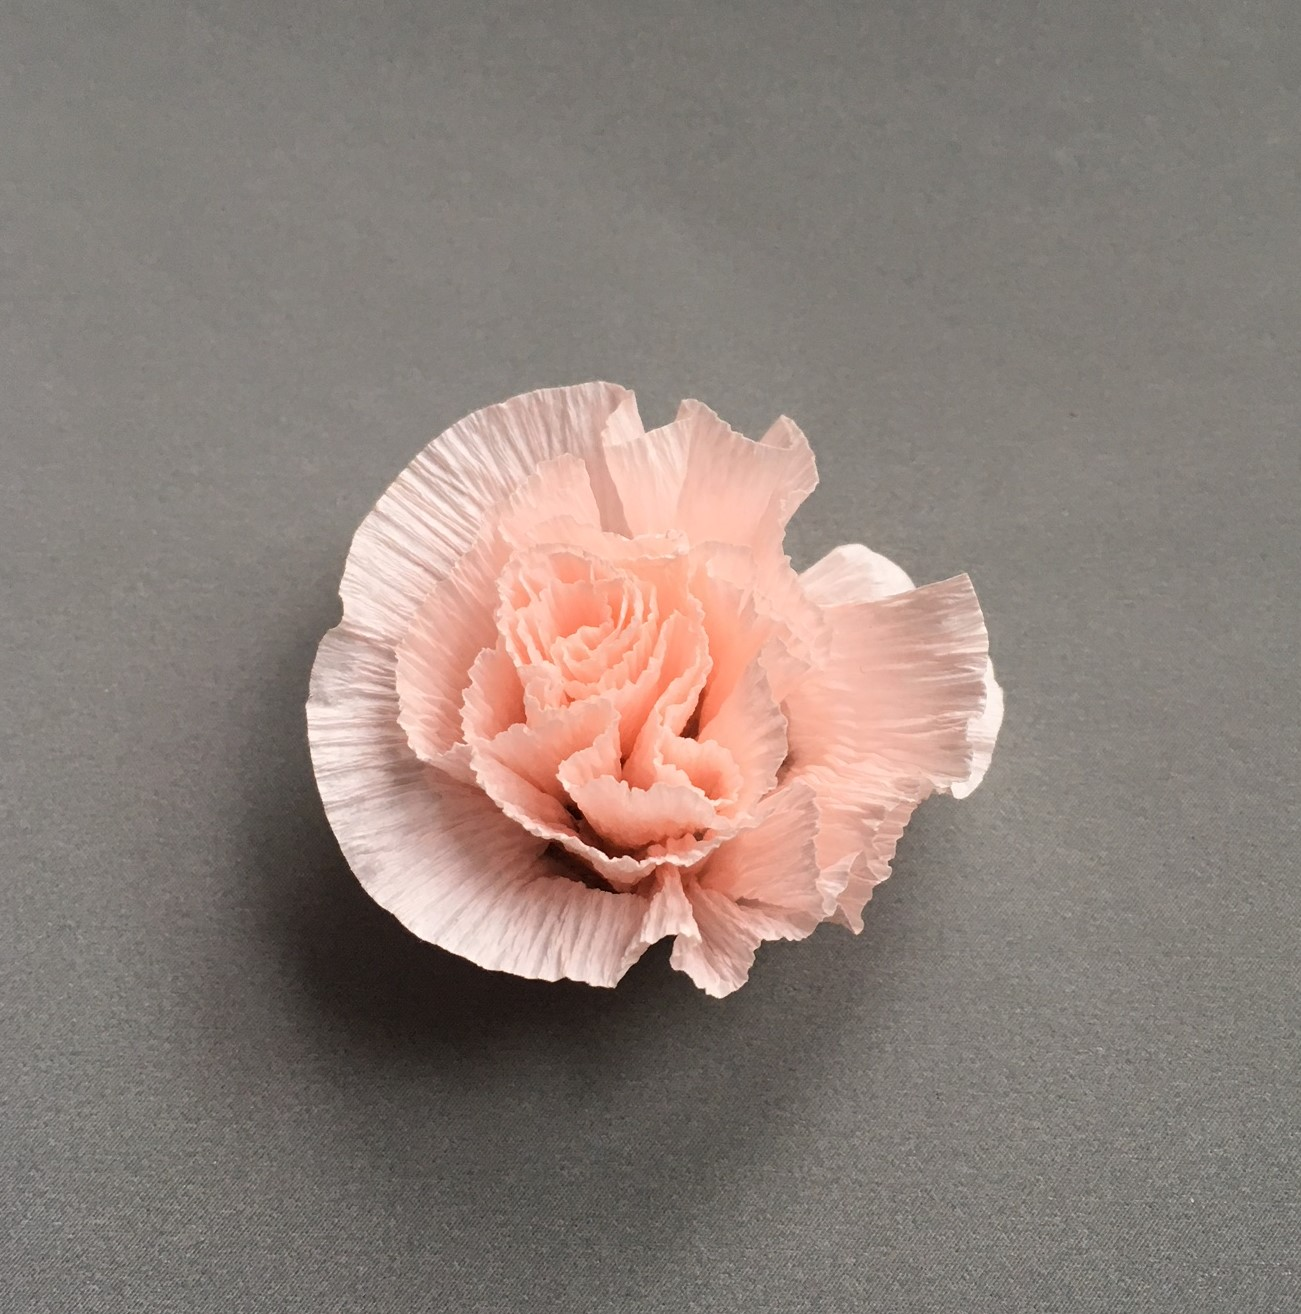 little paper rose (or carnation) for floral candle glass decoration